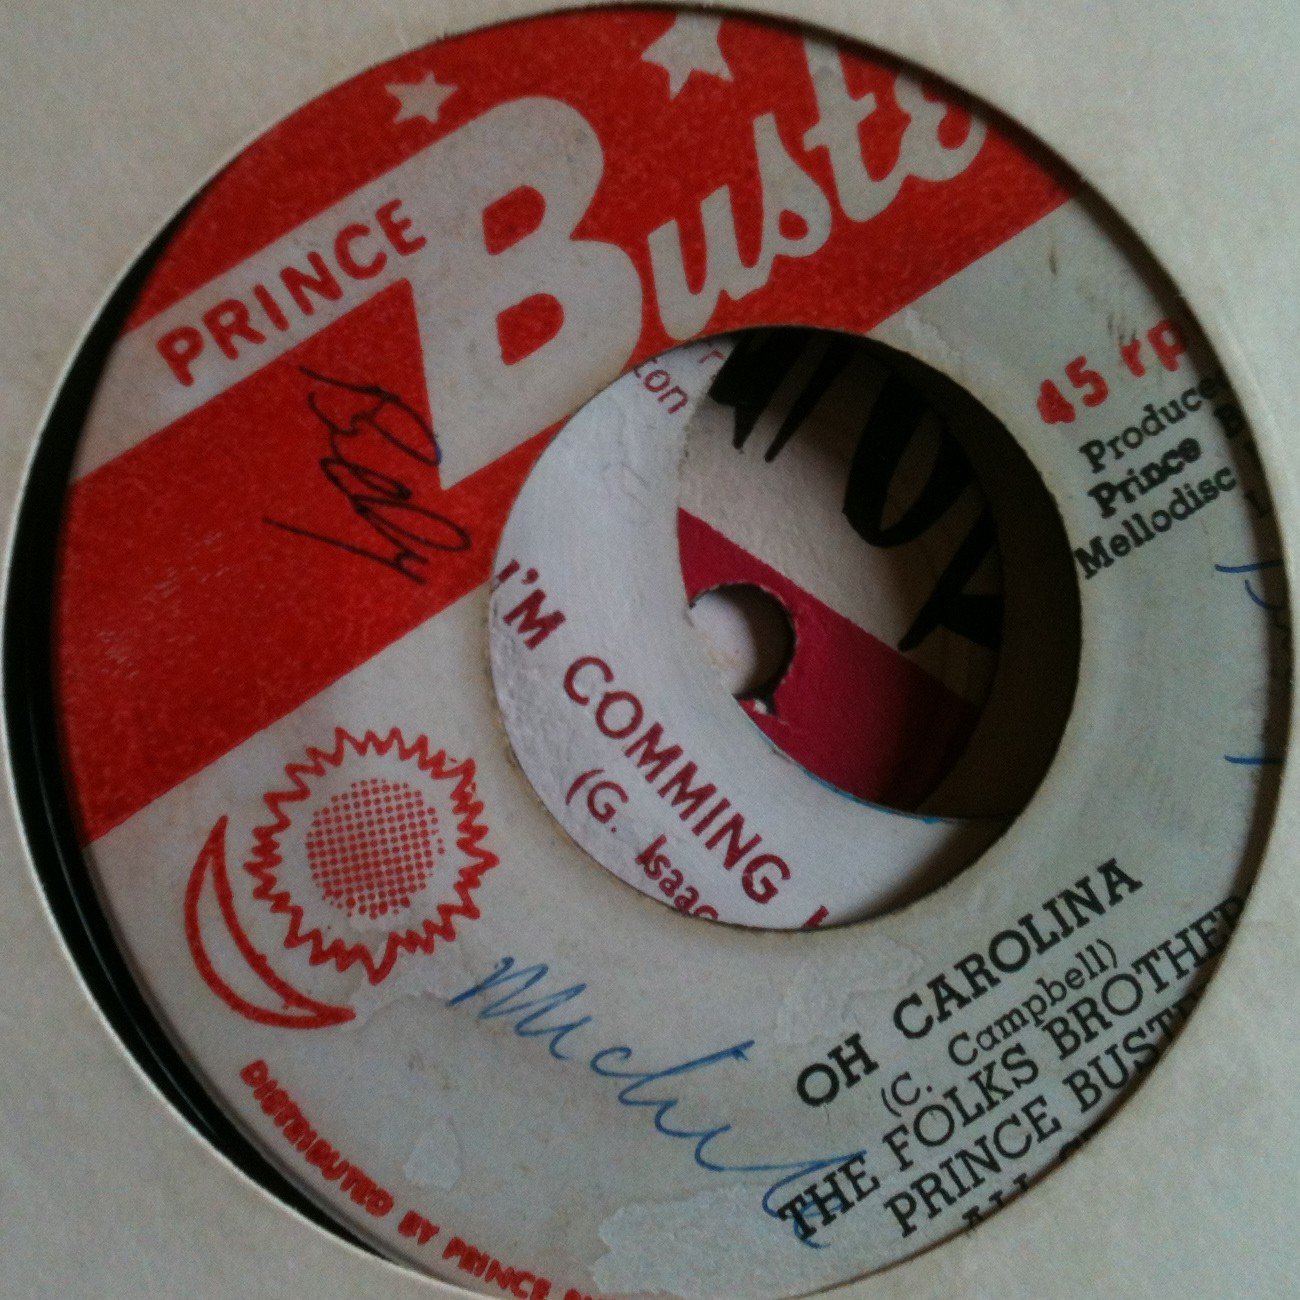 Nothing but good old original records. Some crackle, yes, but ehi, they are really OLD! Enjoy. DOWNLOAD THE PODCAST (right click to save) Folk Brothers – Oh Carolina PRINCE BUSTER...